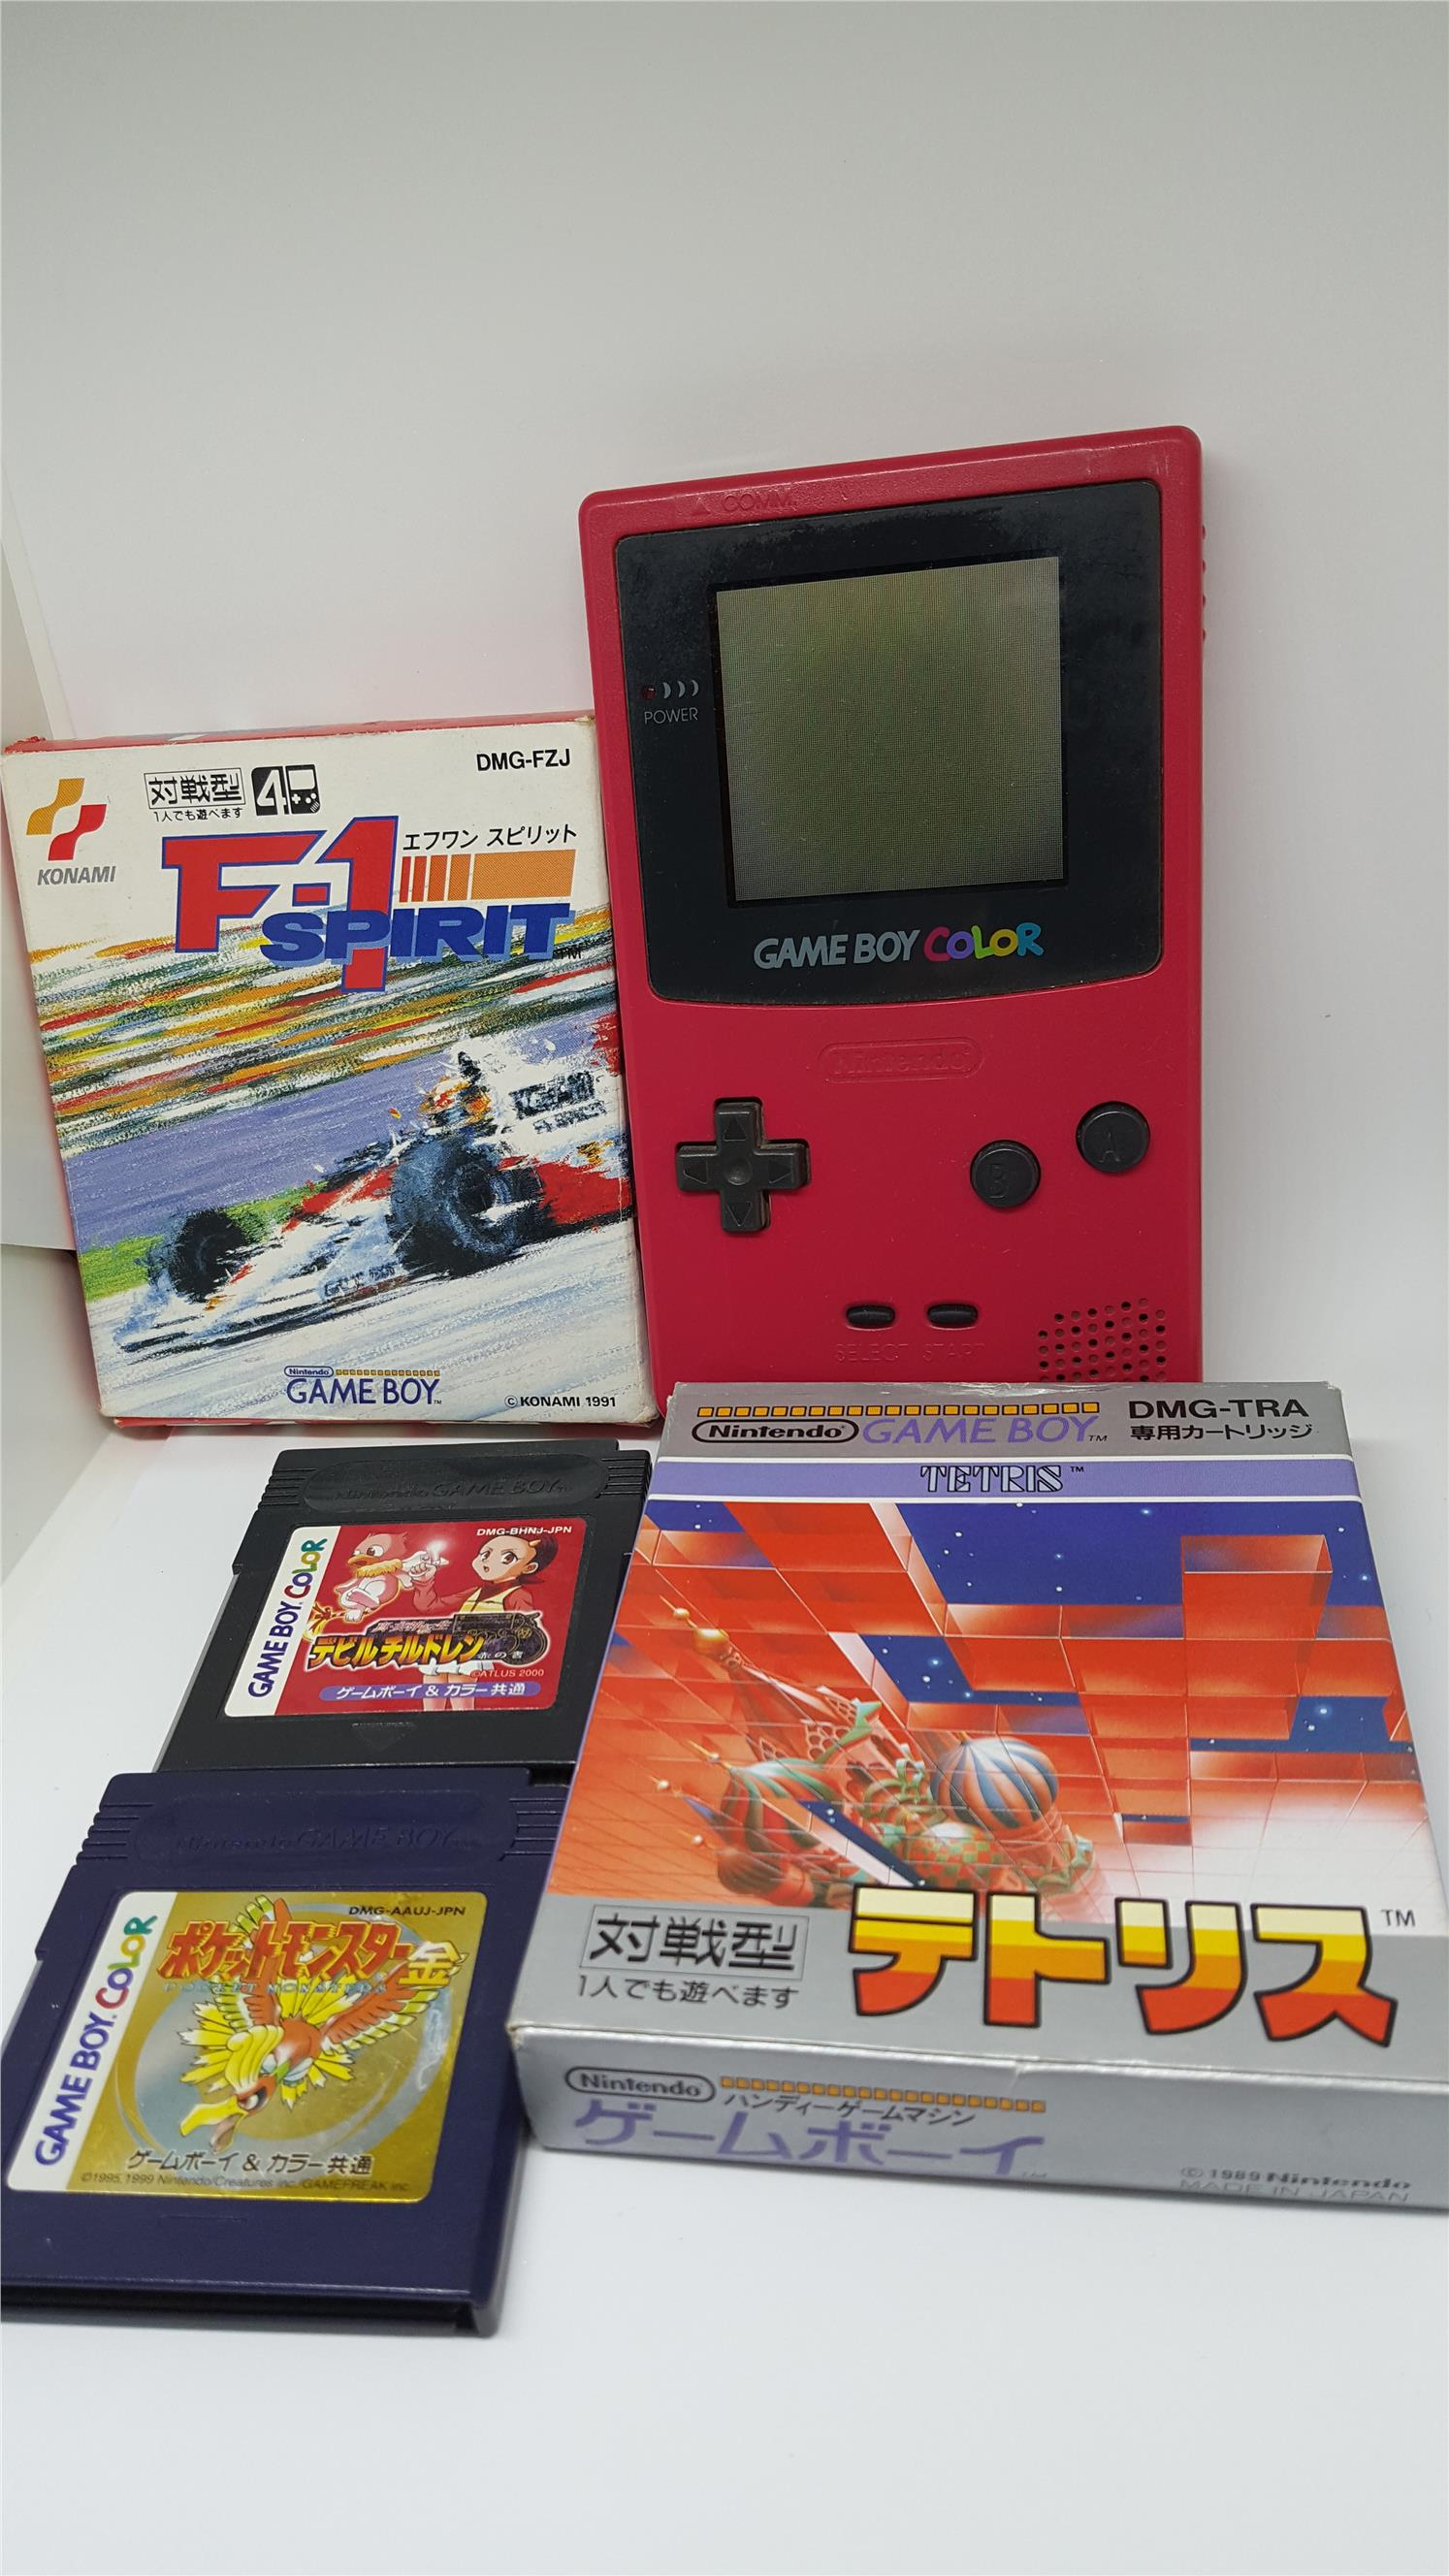 Pokemon games for gameboy color - Gameboy Color Package G Free Pokemon